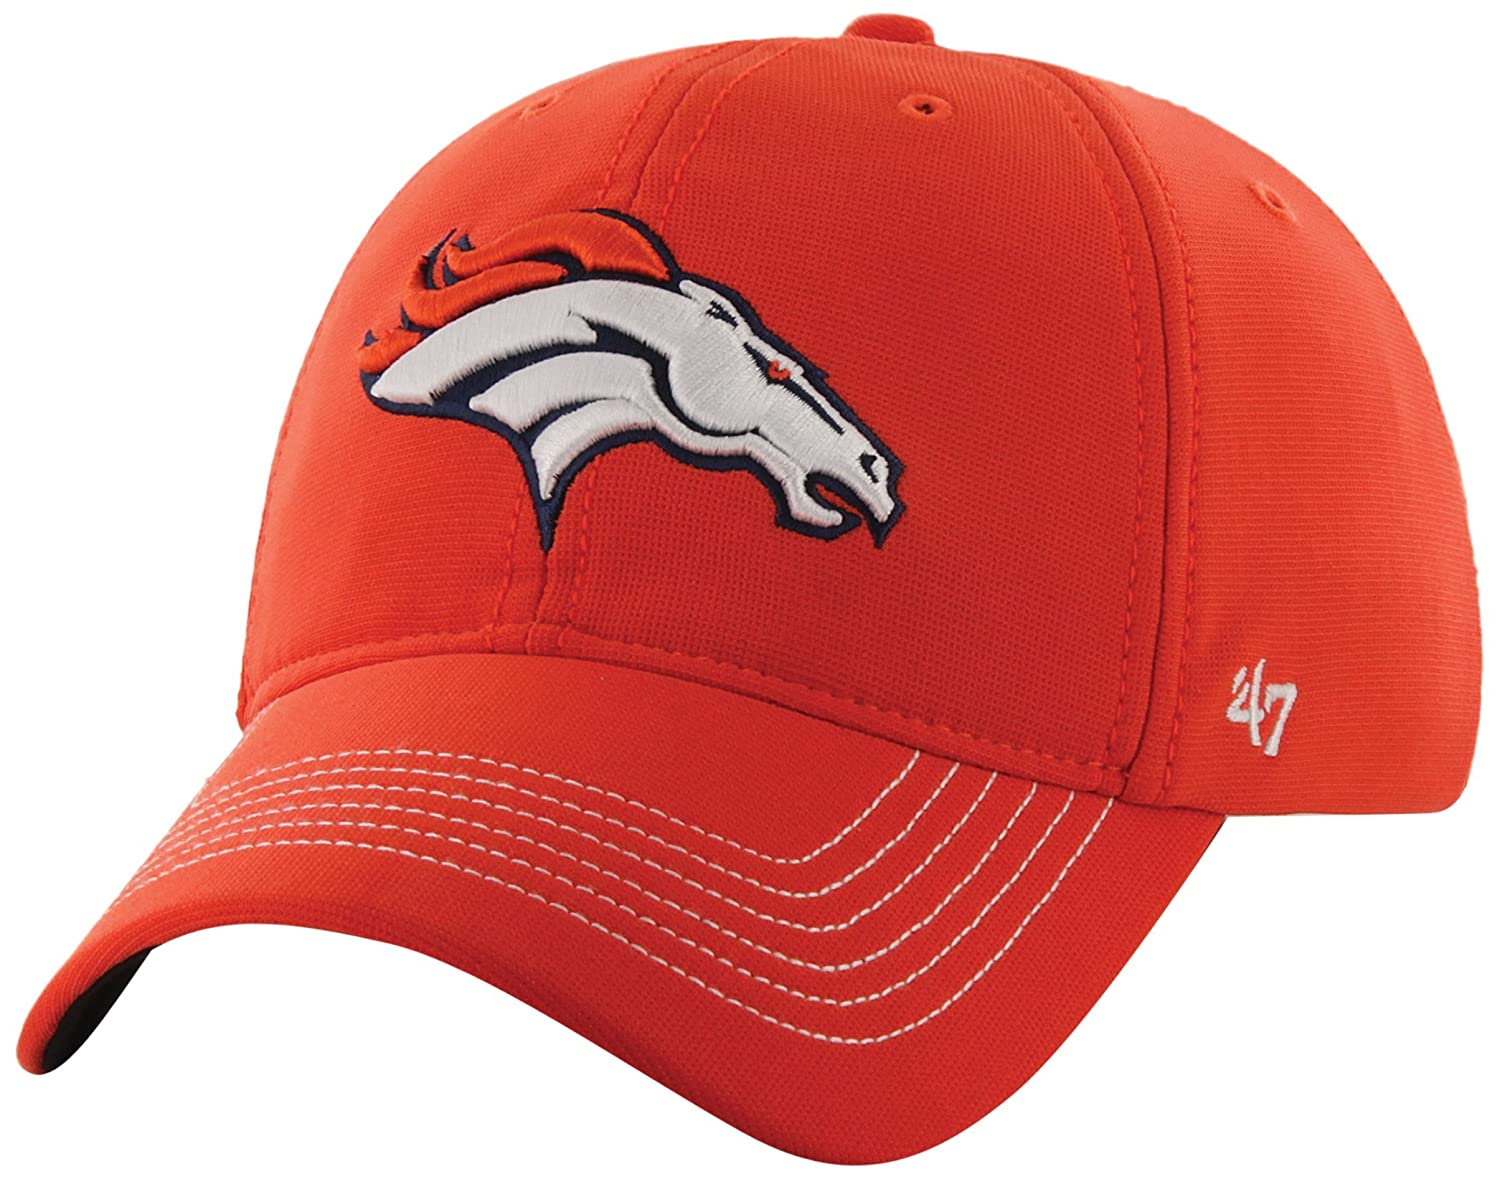 NFL Denver Broncos ' 47ブランドGame Time Closer Stretch Fit Hat One Size Stretch オレンジ B00K1AQR8S